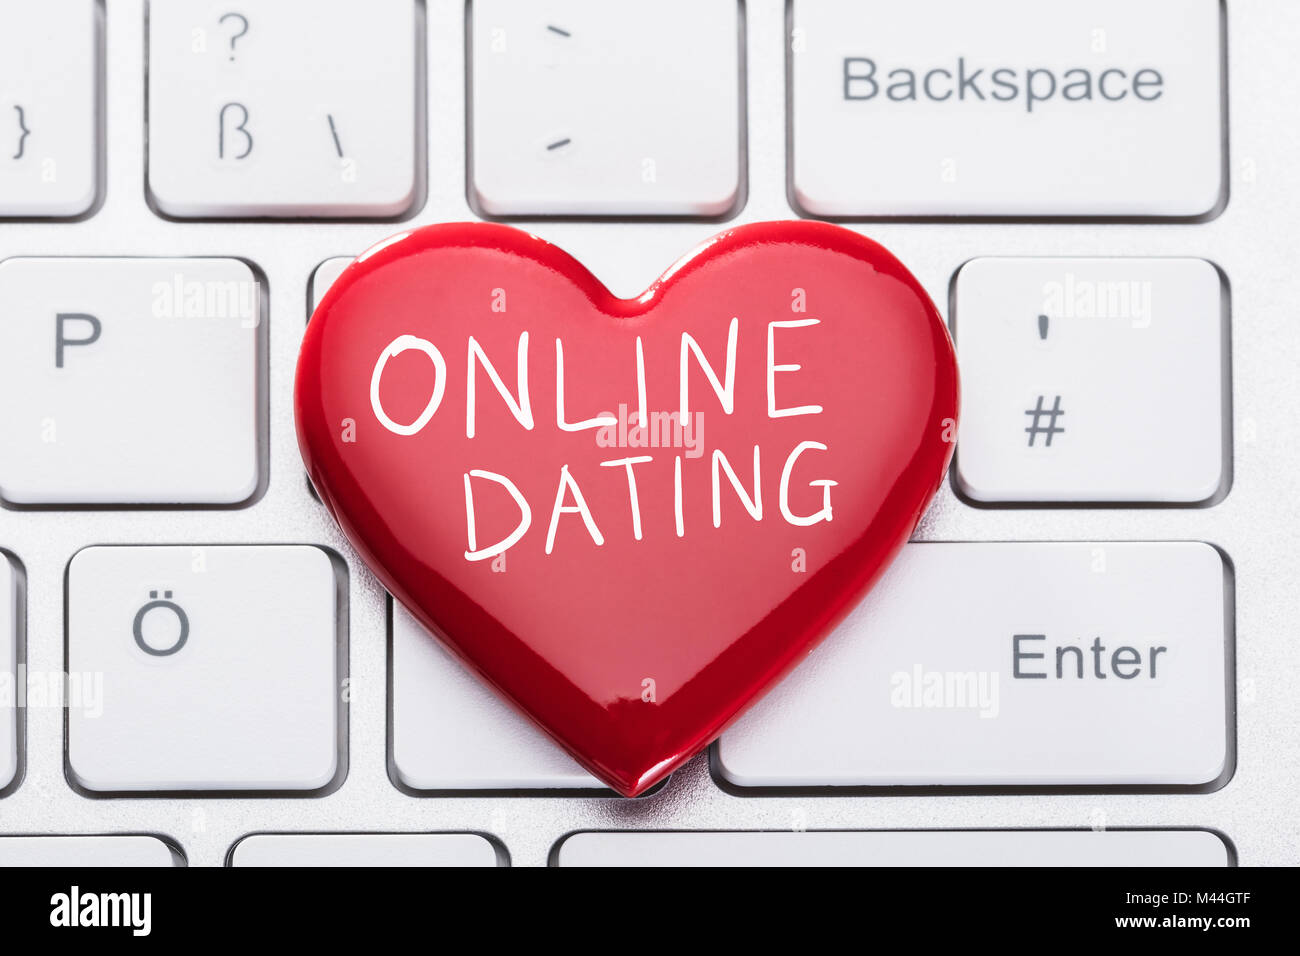 Dating Online Button Stock Photos Dating Online Button Stock